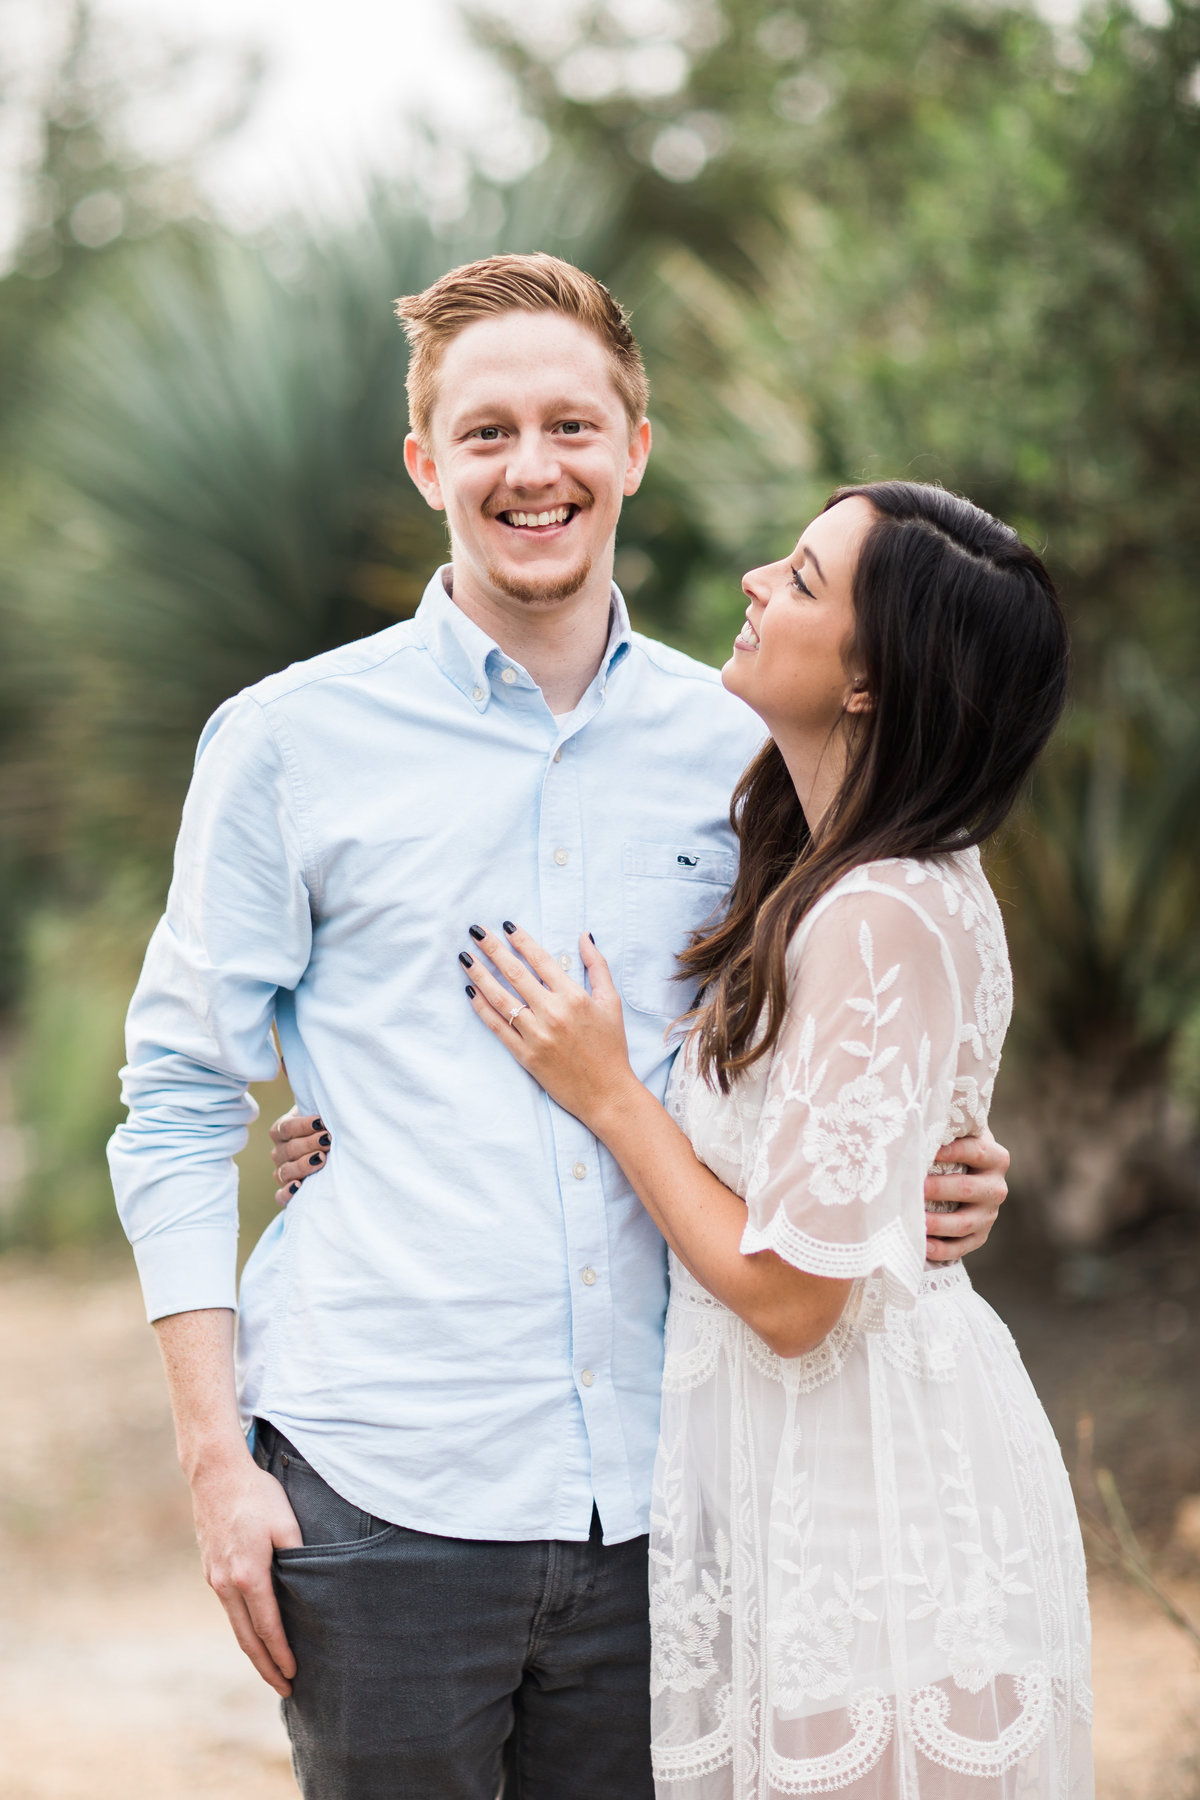 Danielle-Defayette-Photography-Raleigh-Arboretum=Engagement-112